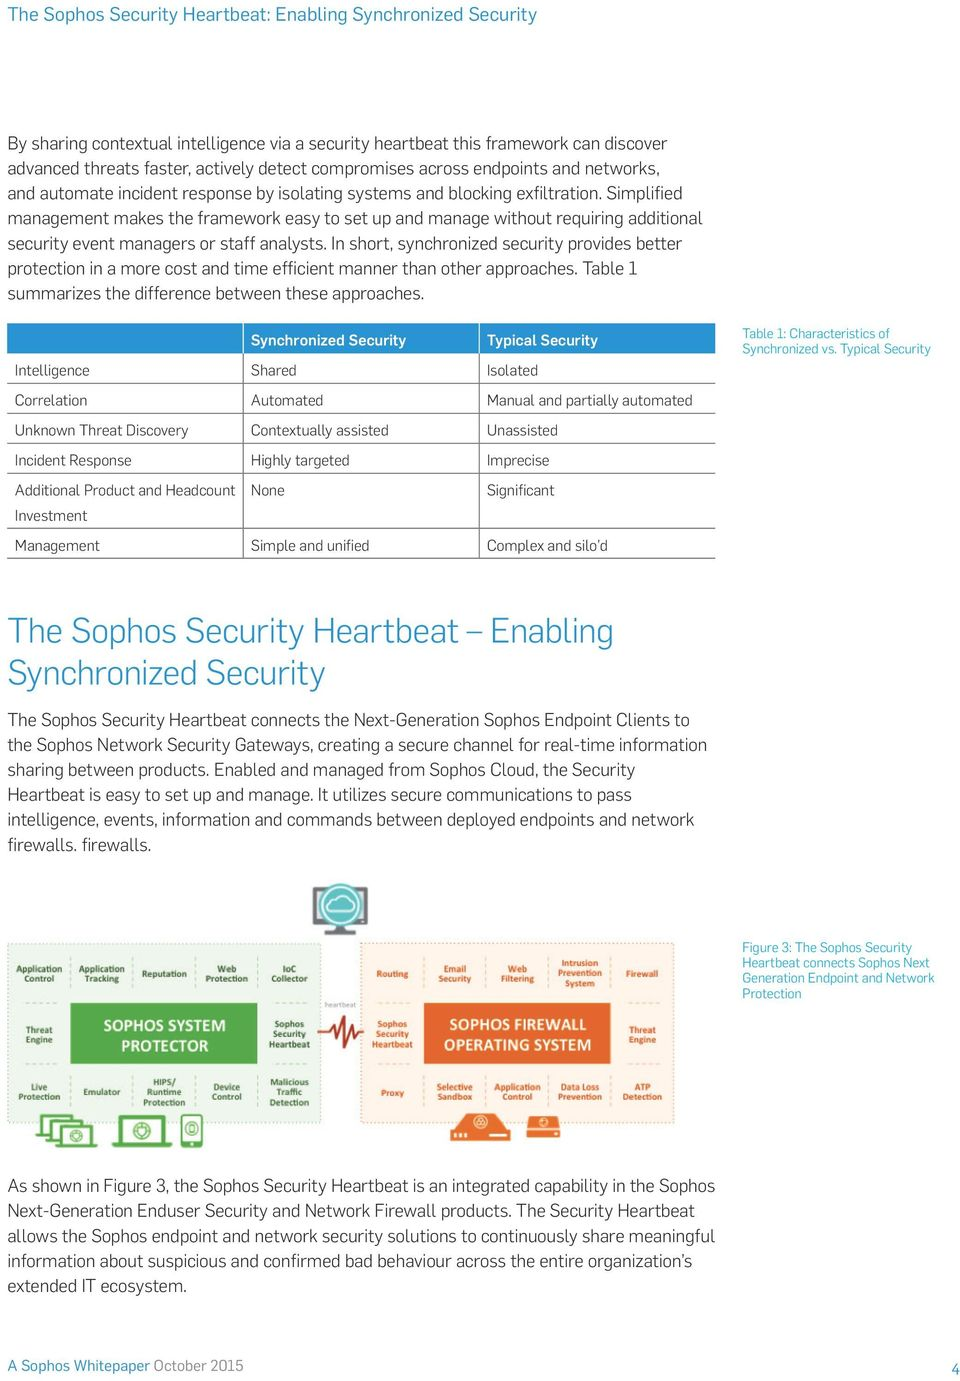 In short, synchronized security provides better protection in a more cost and time efficient manner than other approaches. Table 1 summarizes the difference between these approaches.